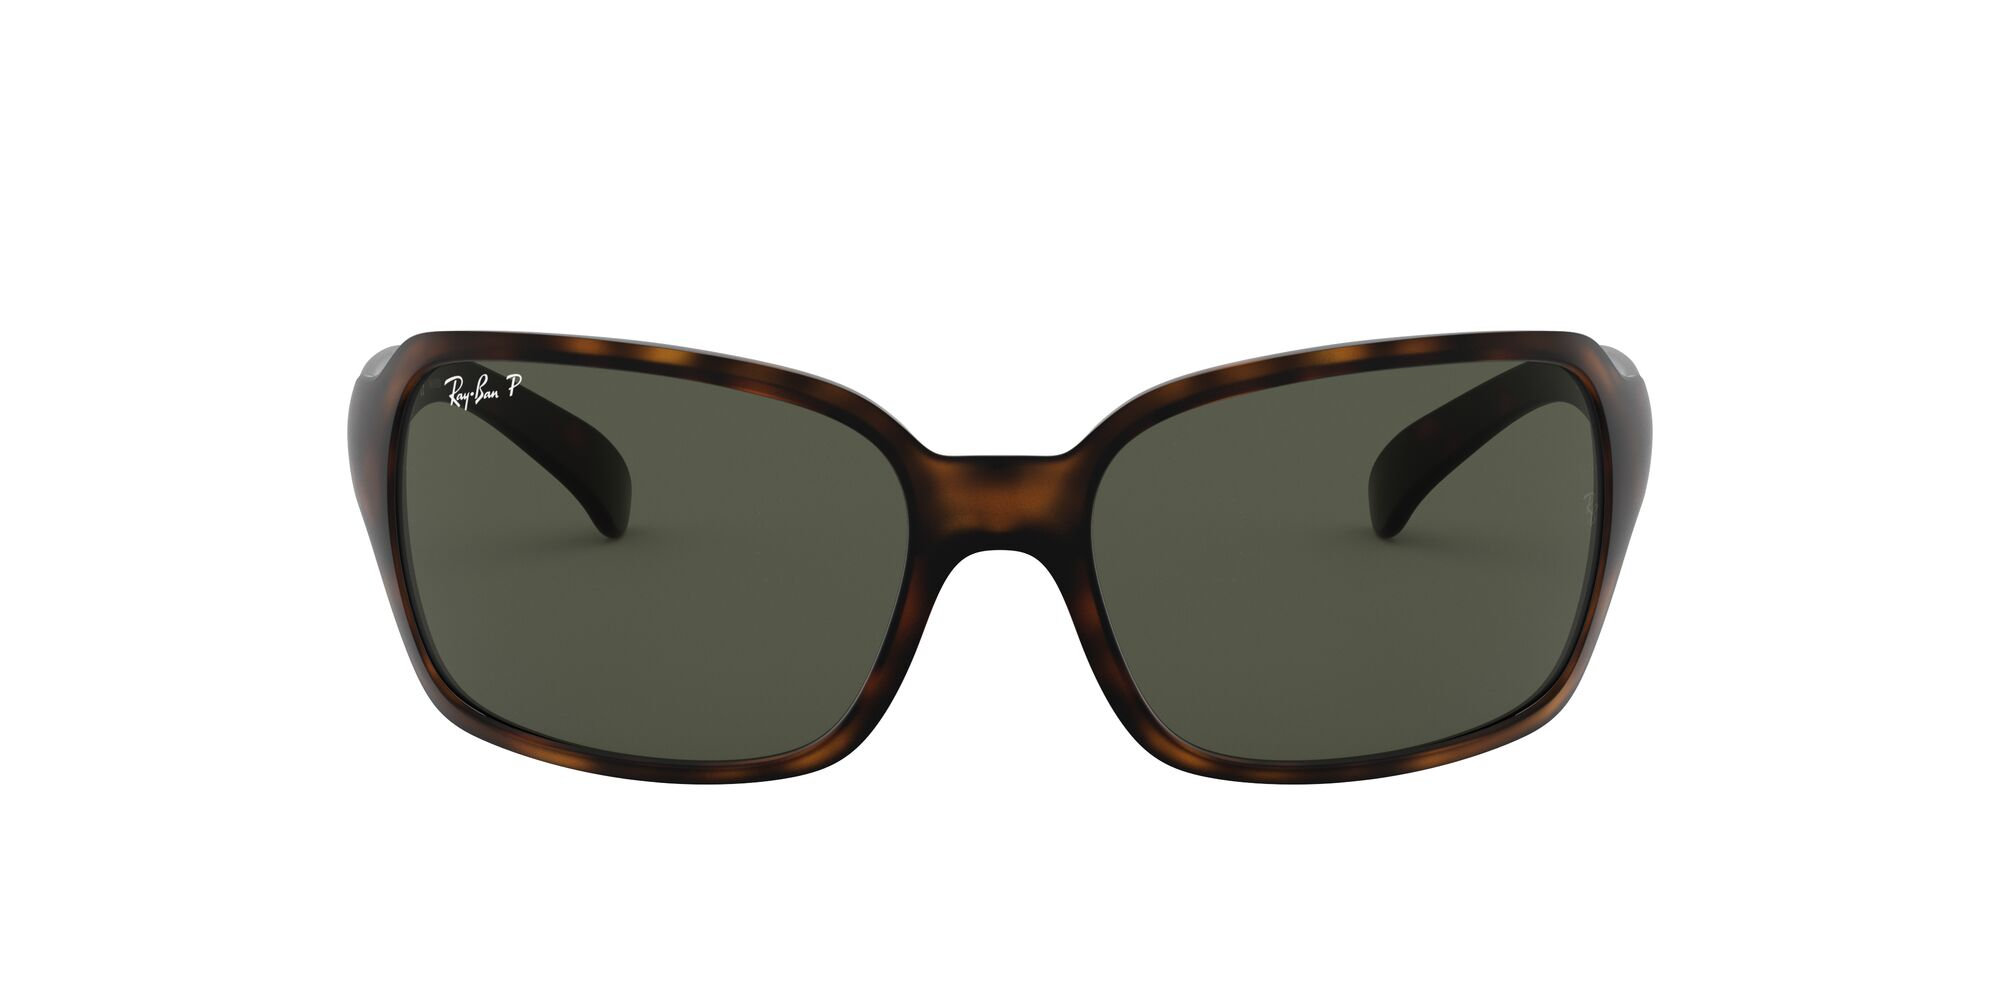 Front Ray-Ban Ray-Ban 0RB4068 894/58 60/17 Bruin/Groen